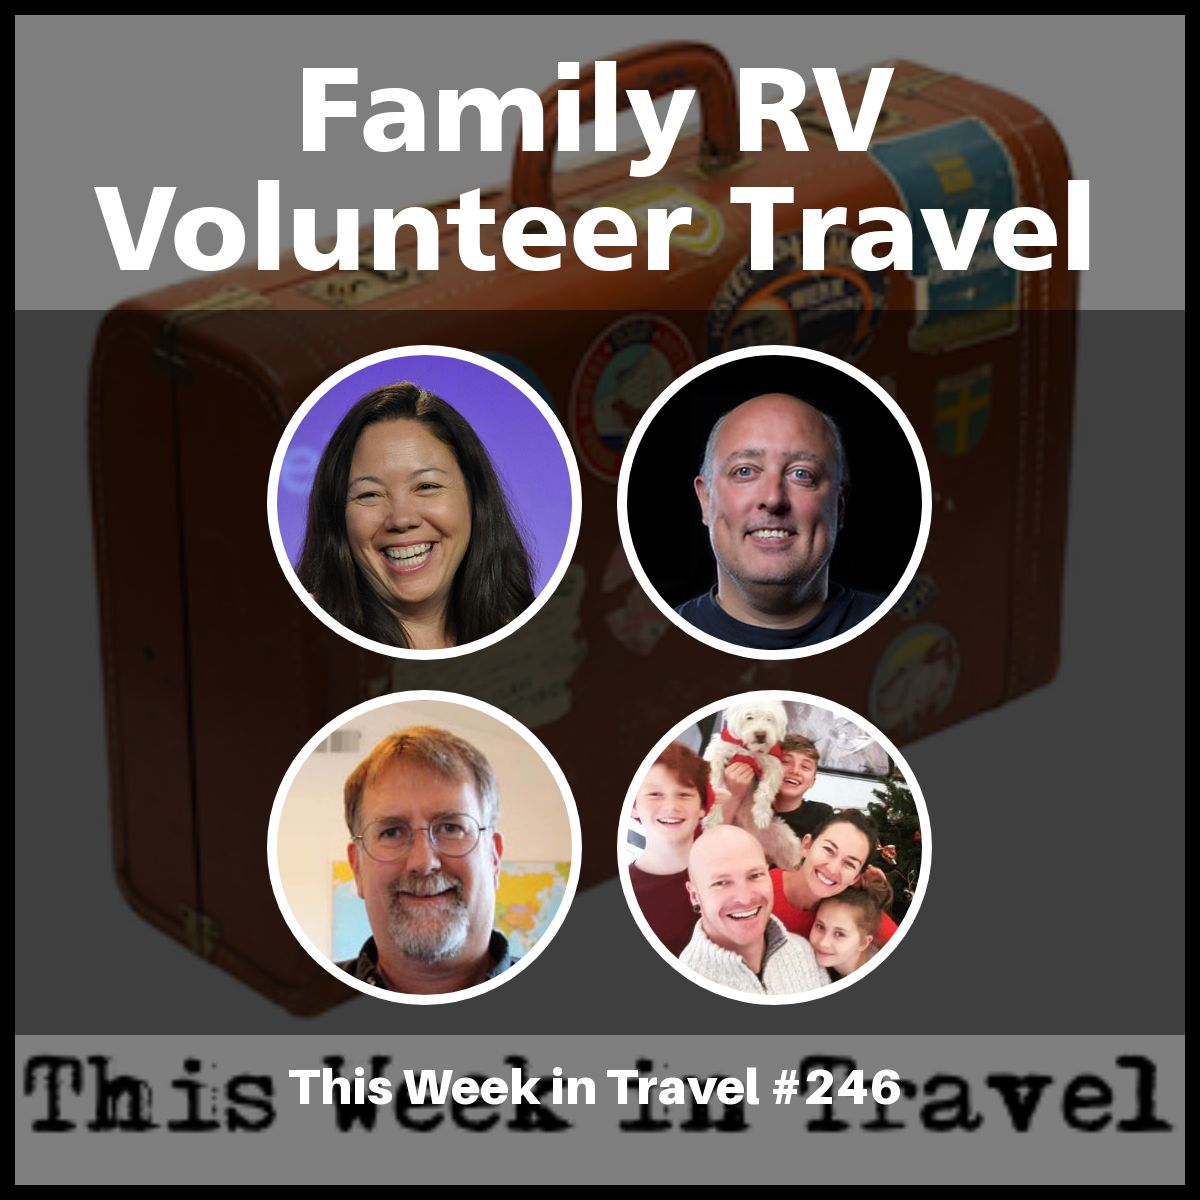 Family RV Volunteer Travel – This Week in Travel #246